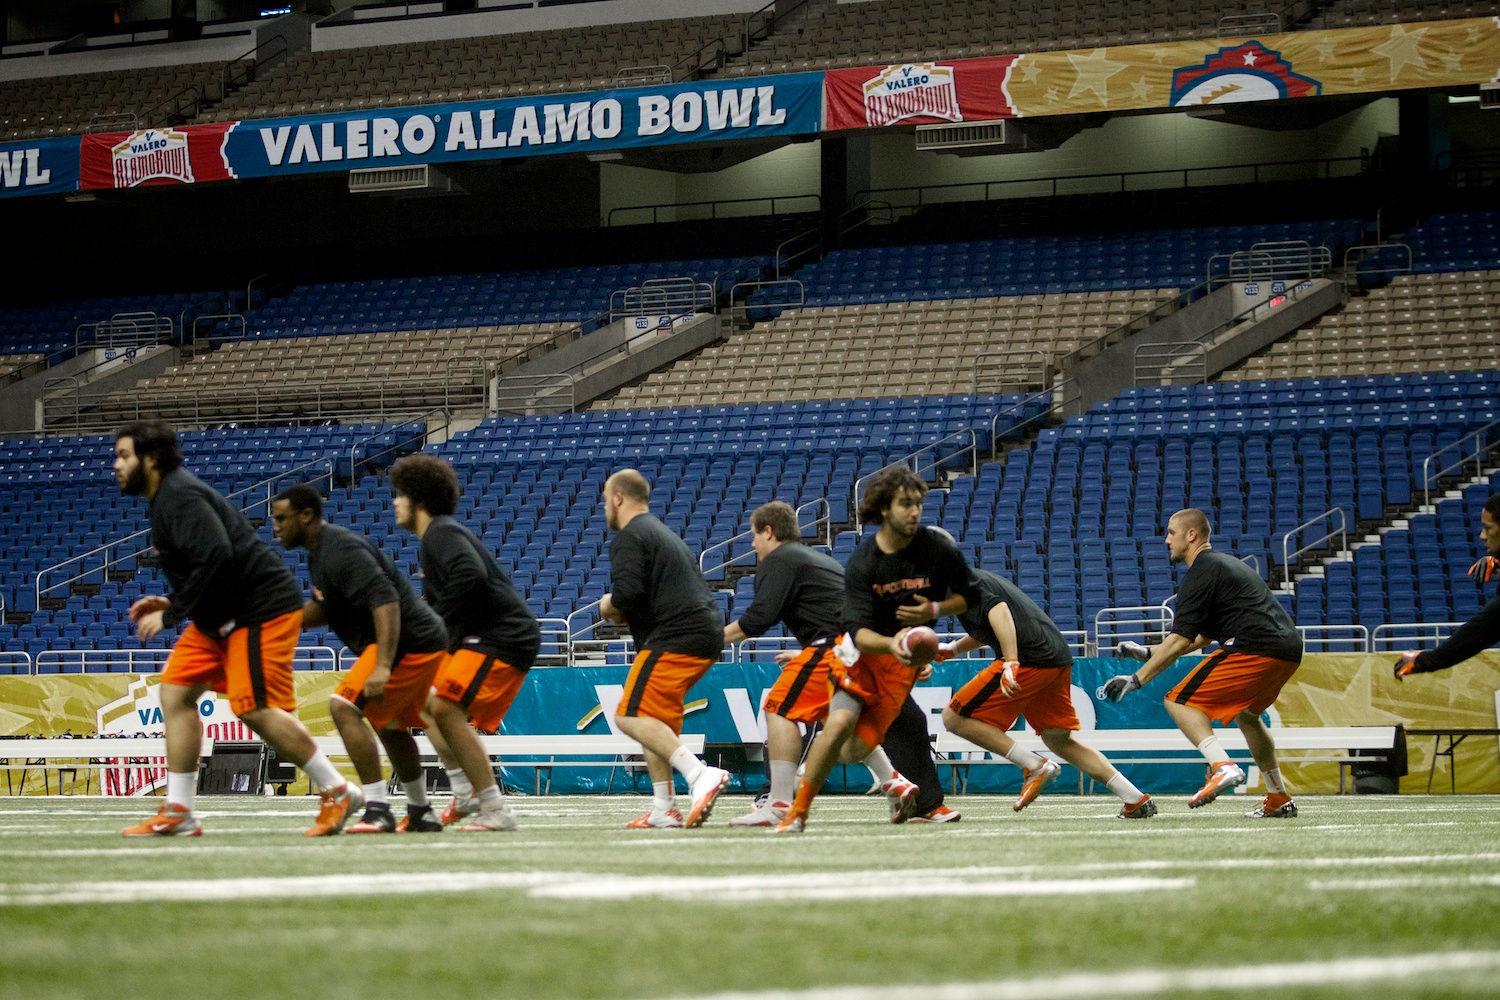 The Oregon State Beavers during their walk-through the day before the Alamo Bowl in San Antonio, Texas.